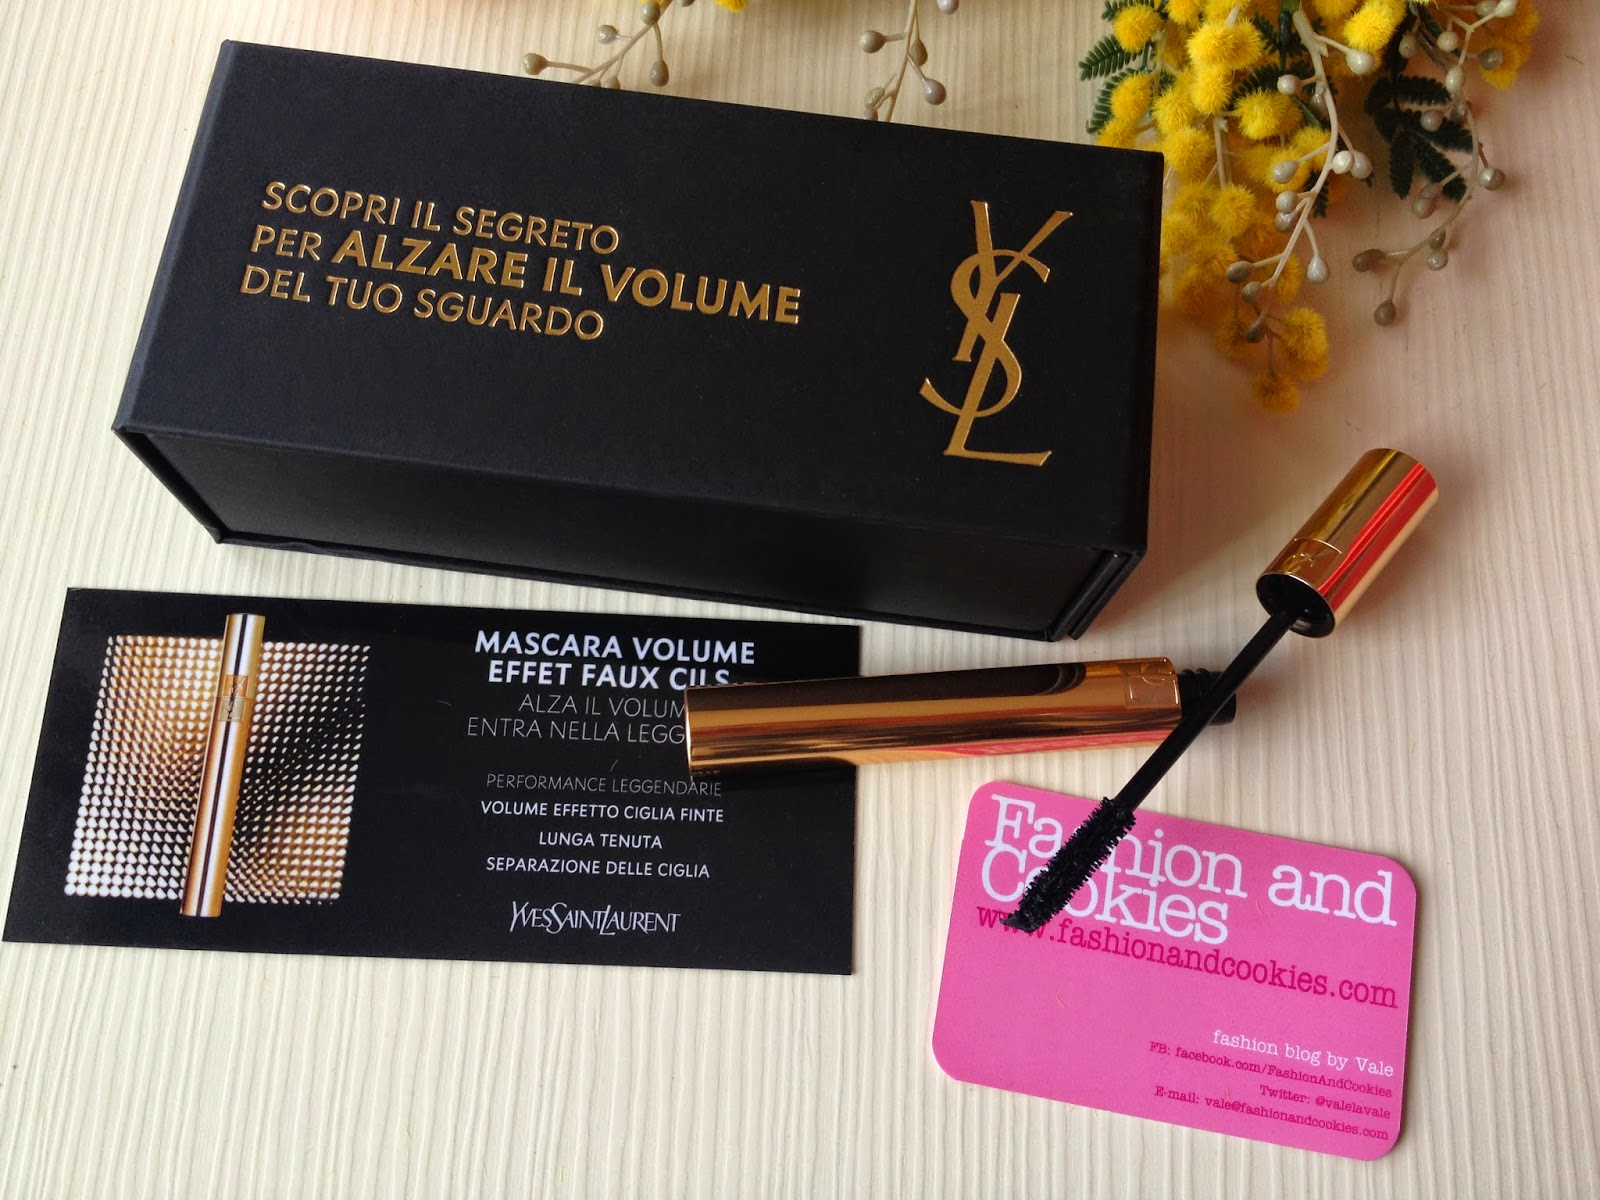 YSL new mascara, YSL Volume Effet Faux Lashes Mascara, Fashion and Cookies fashion blog,  fashion blogger,  YSL mascara review